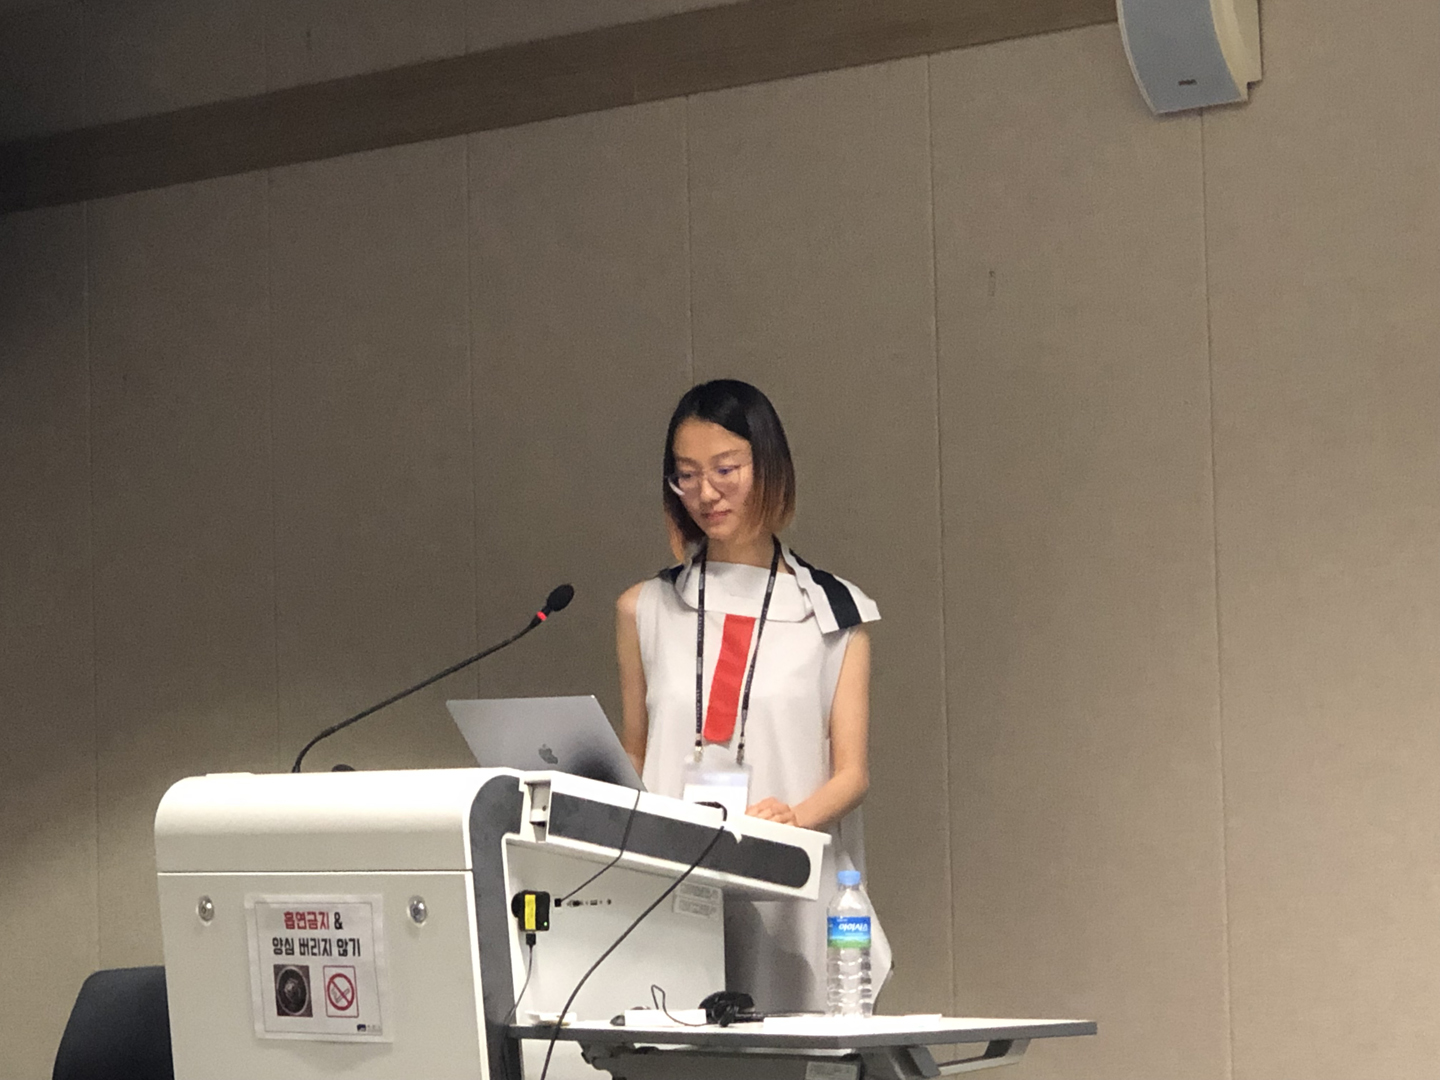 ©ISEA2019: 25th International Symposium on Electronic Art, Jiabao Li and Honghao Deng, TransVision: Exploring the State of the Visual Field in the Age of Extreme Augmentation